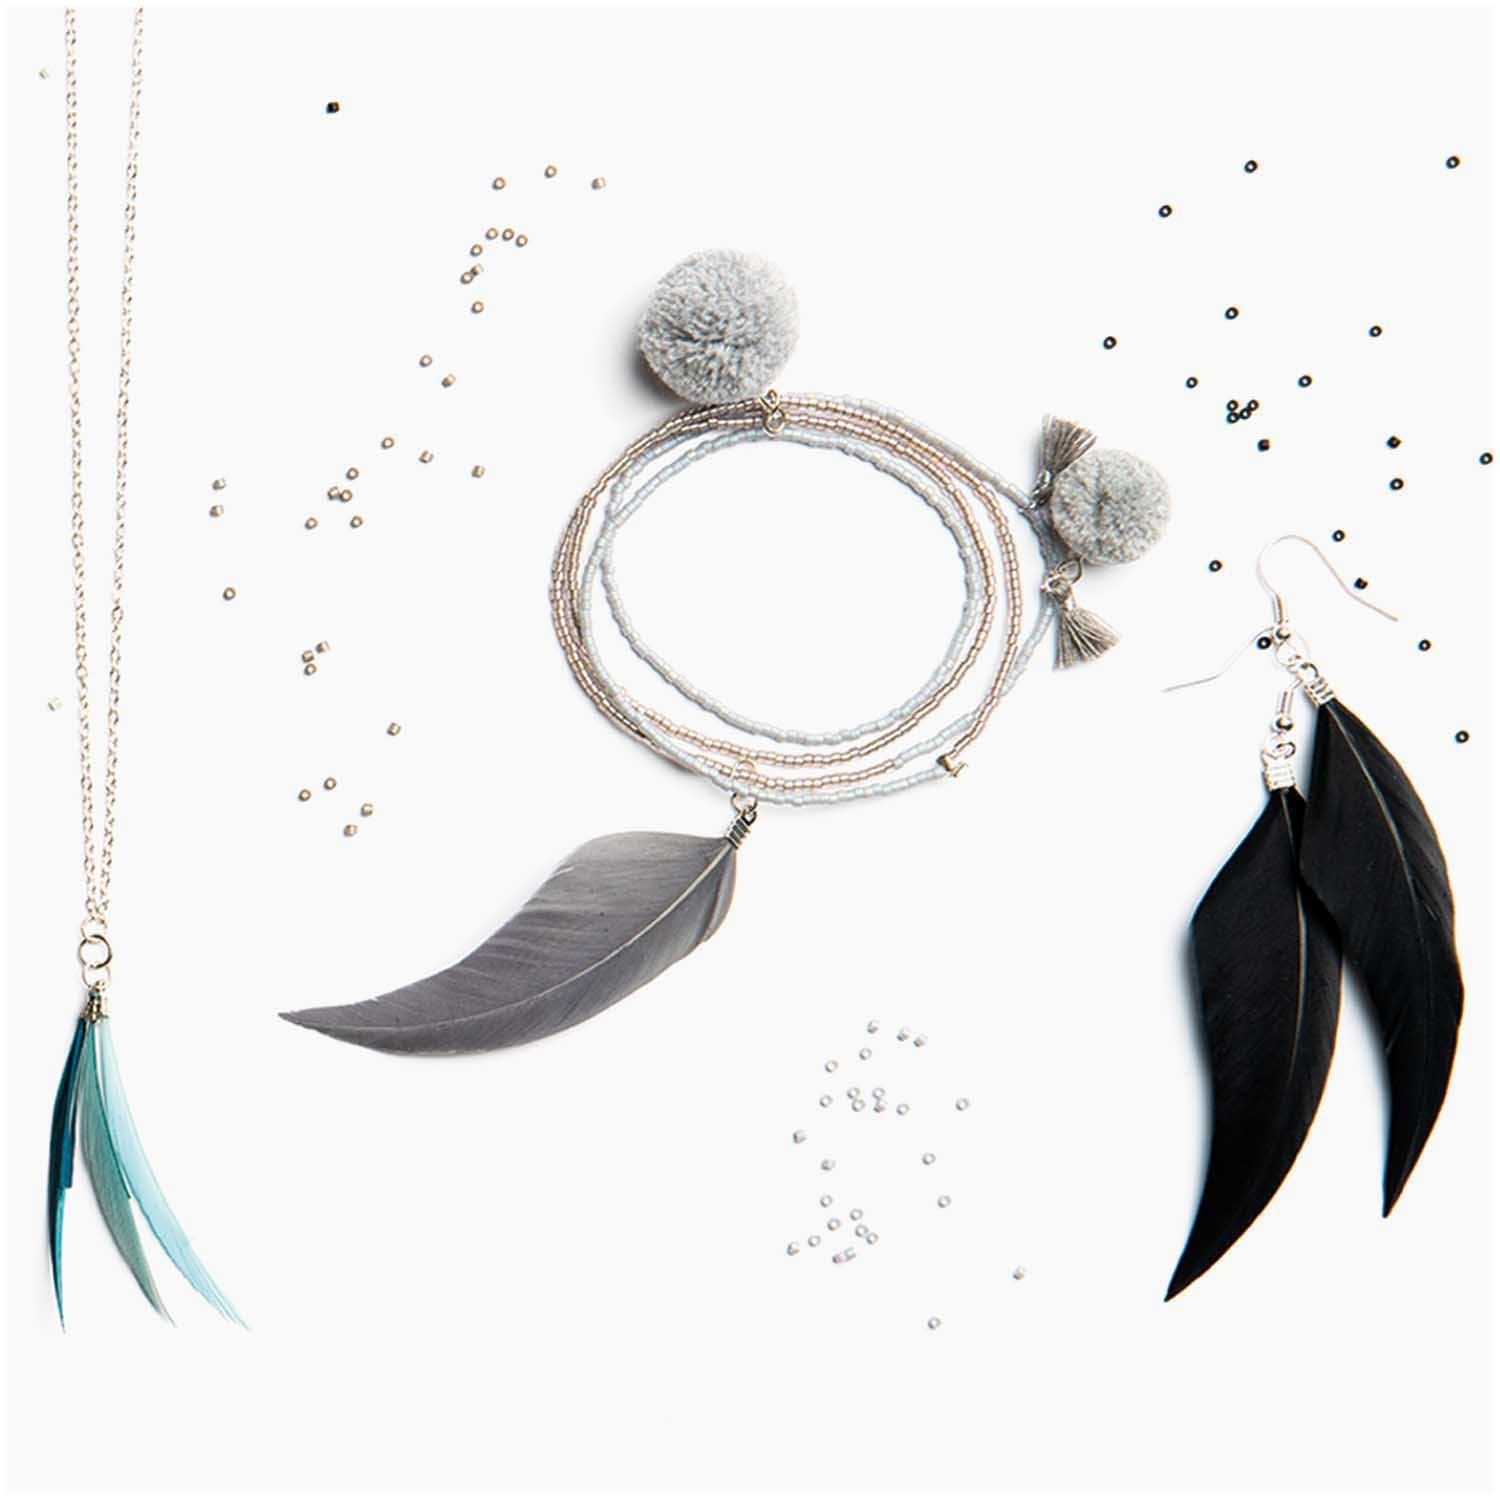 Rico NAY FEATHERS, MULTICOLOR MIX 6 PCS, WITH SILVER EYELET